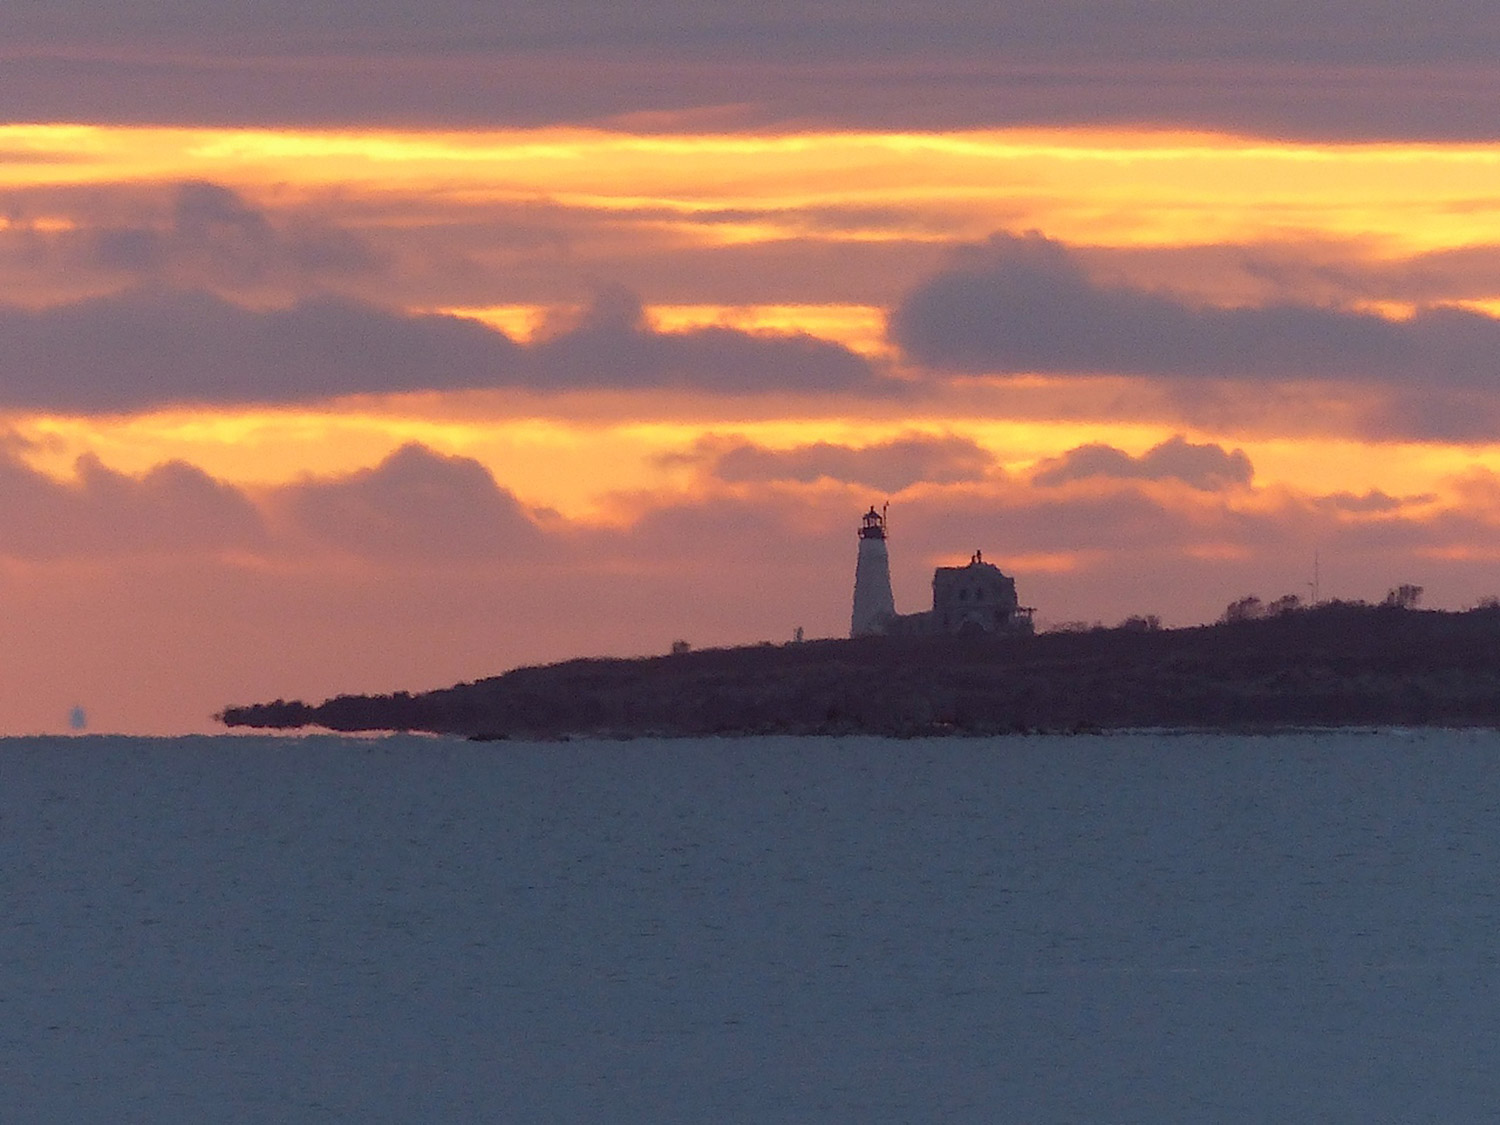 Among the wonders of another sunrise over Saco Bay – a mirage that makes the tip of Wood Island Light seem to levitate above the sea. Laurie Blair Ernst of Saco took this gem from the beach at Kinney Shores.